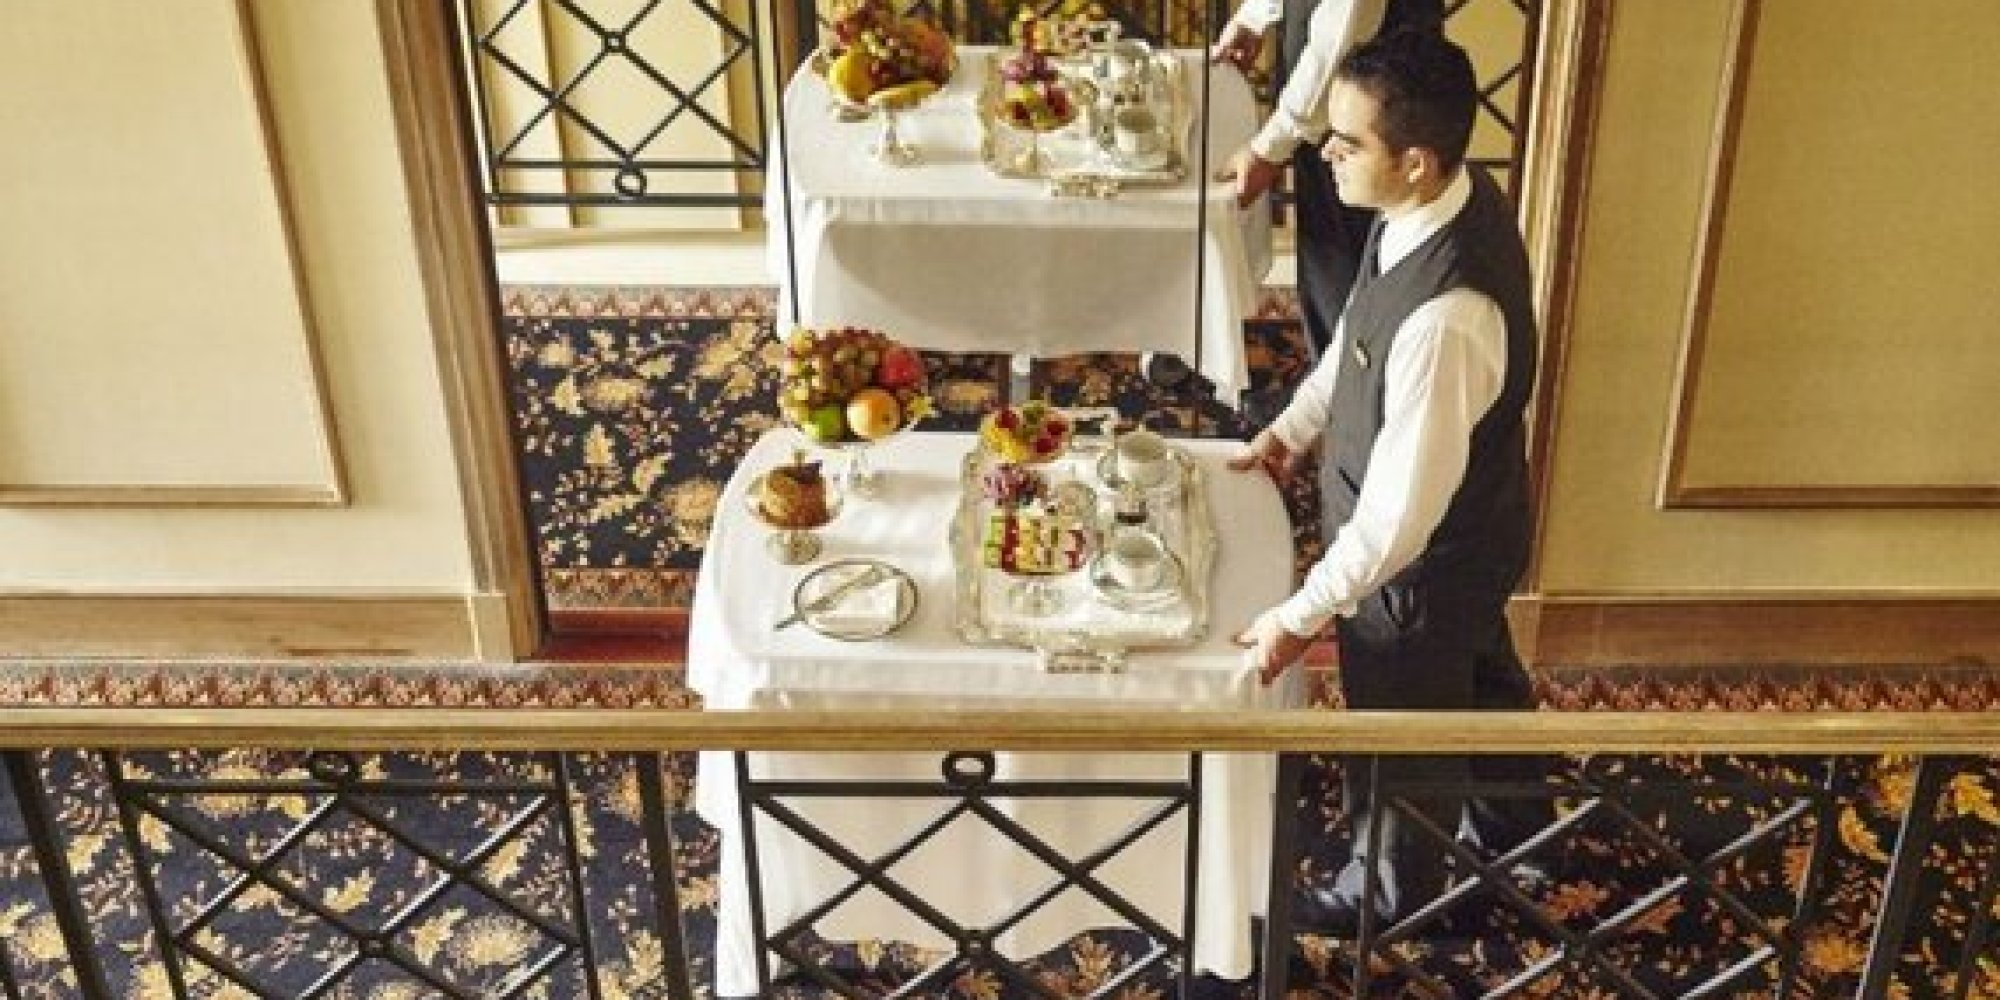 7 Things You Should Never Order From Room Service | HuffPost